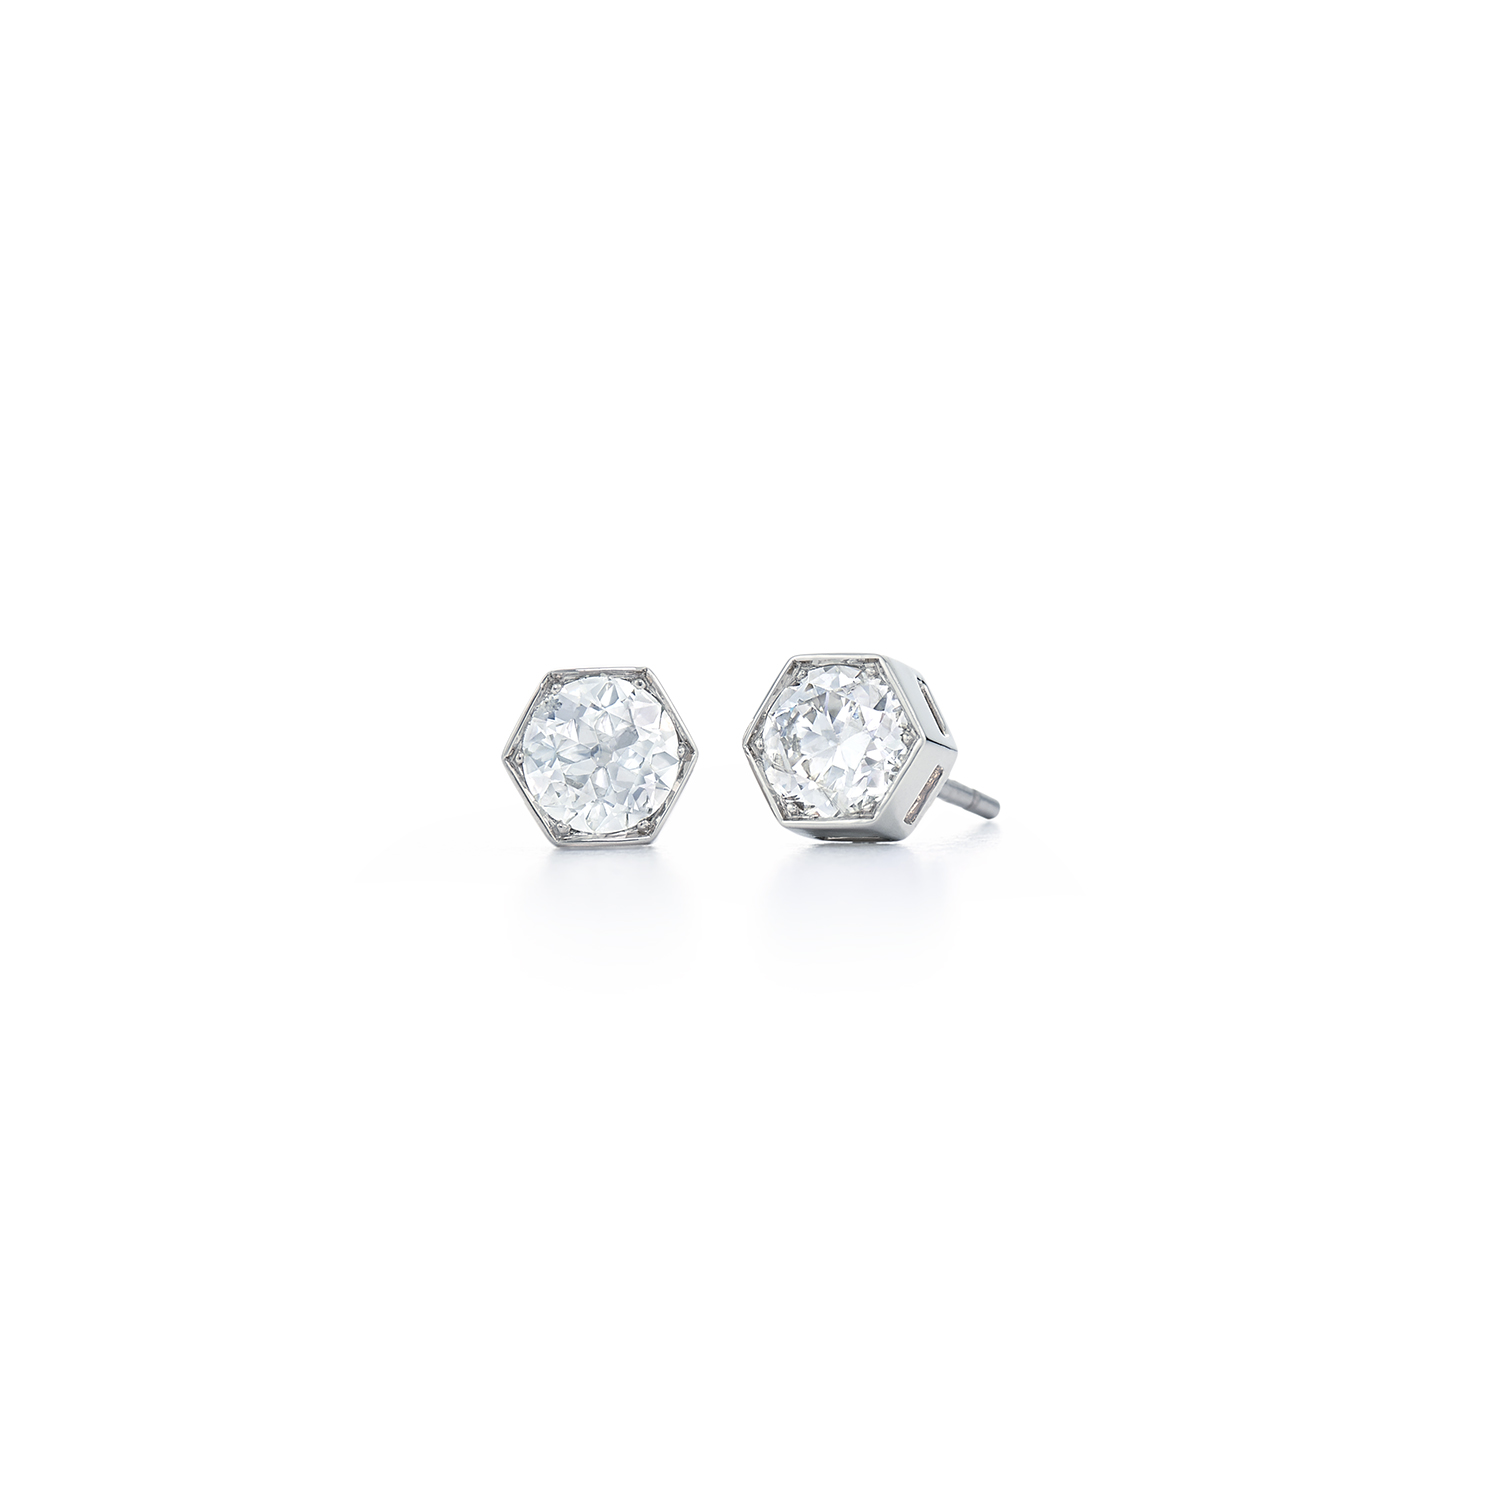 Signed Fred Leighton Hexagonal Diamond Stud Earrings E-1052FL-0-DIA-18KW